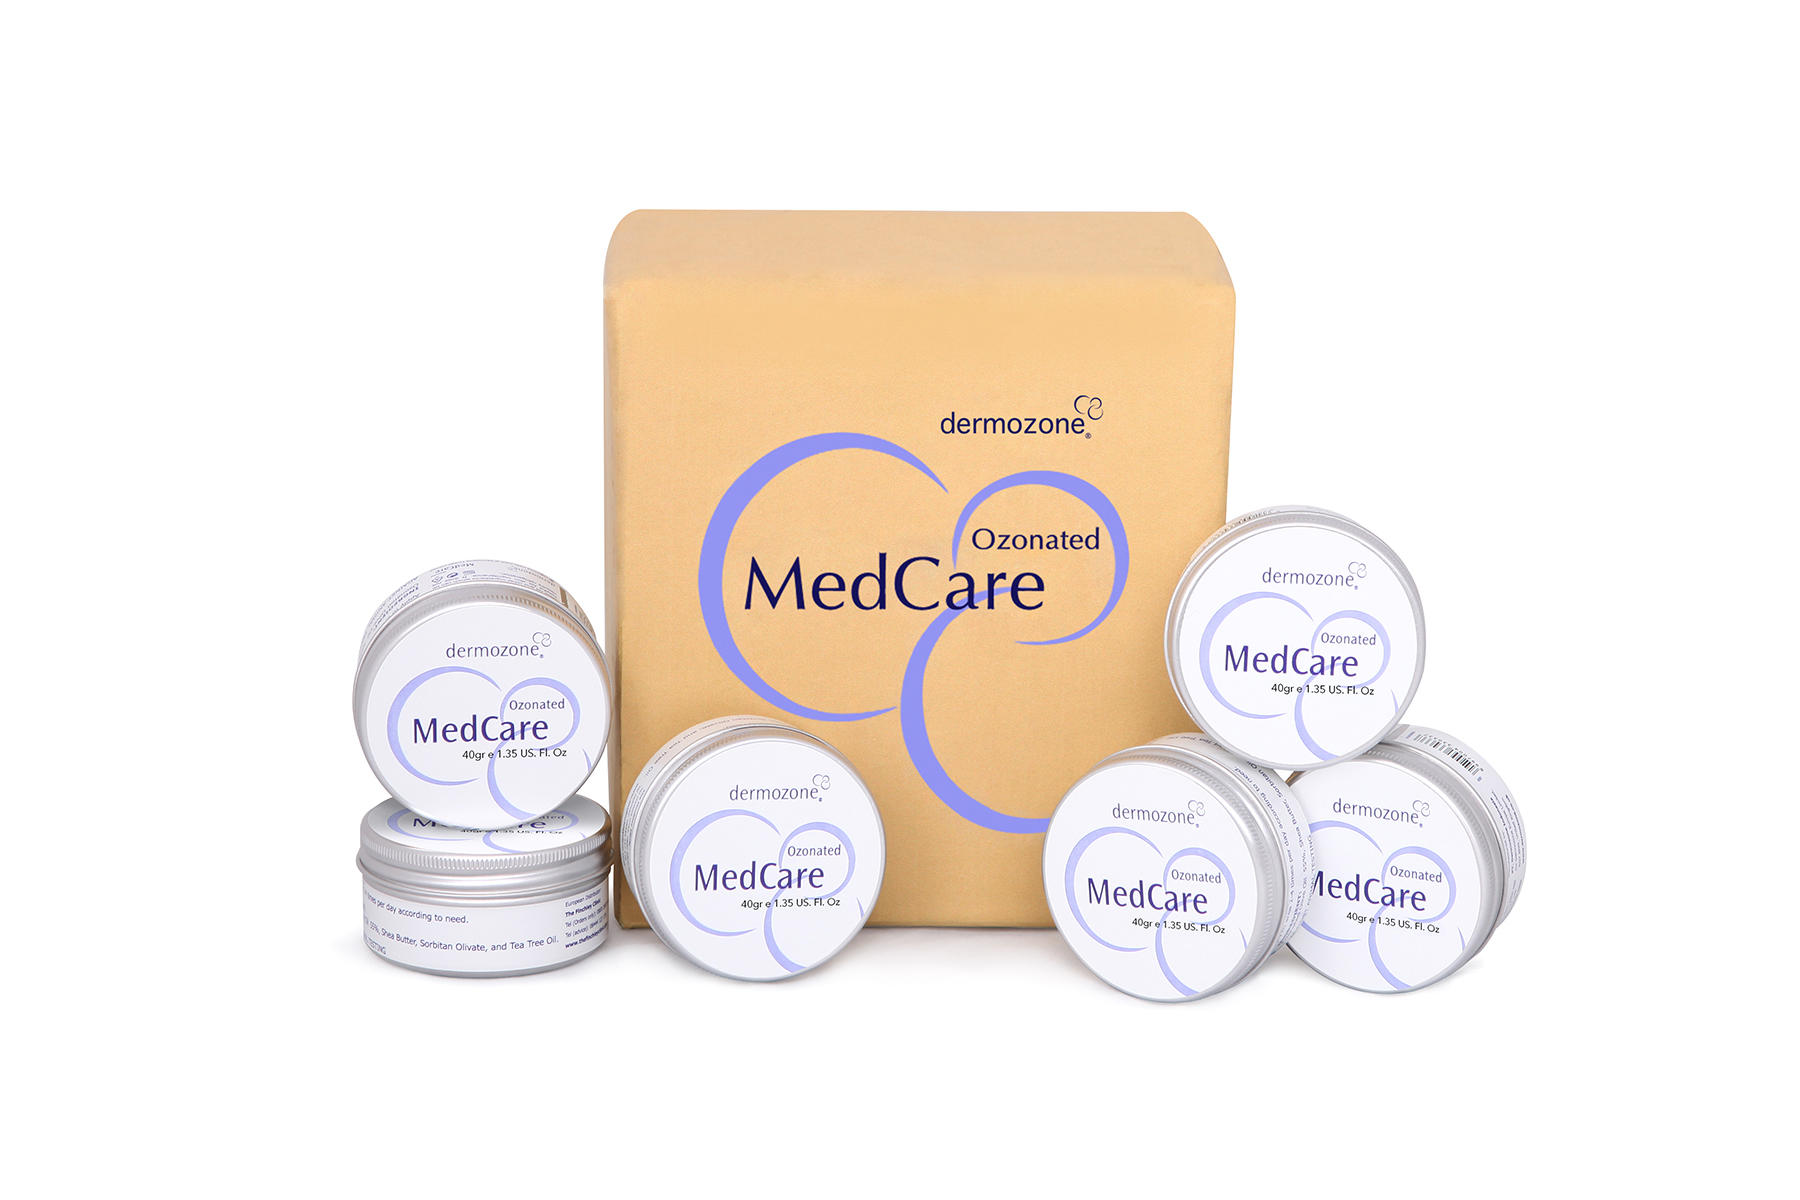 Medcare The Ozonated Olive Oil Launched In India Health News Et